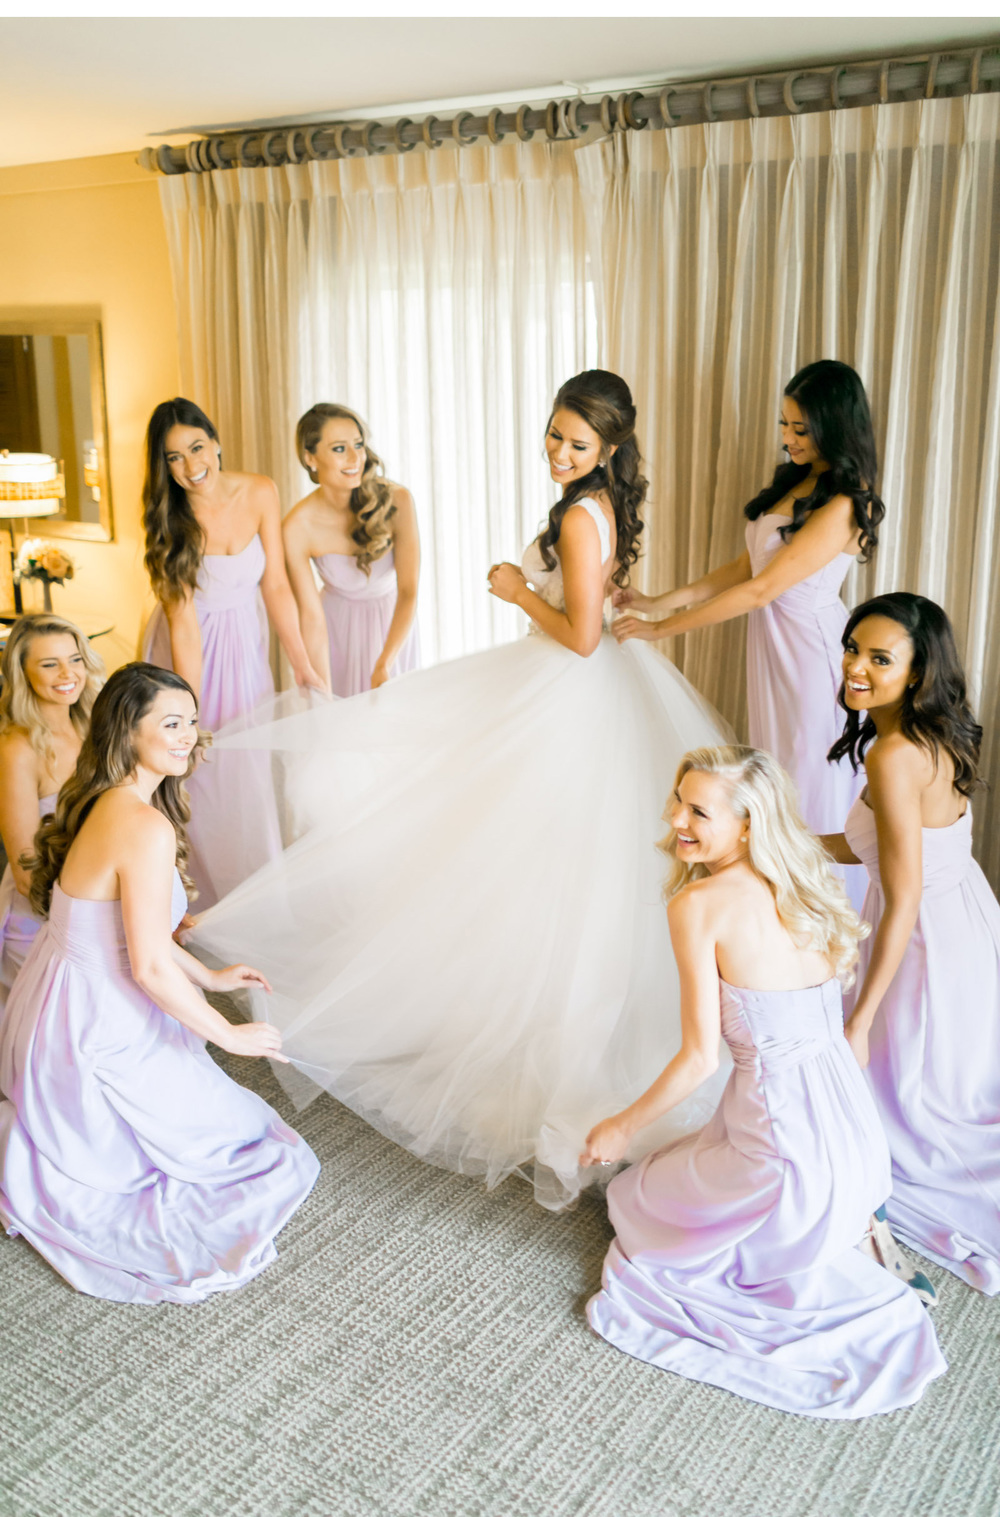 Miss-USA-Wedding-Nia-Booko-Natalie-Schutt-Photography_01.jpg